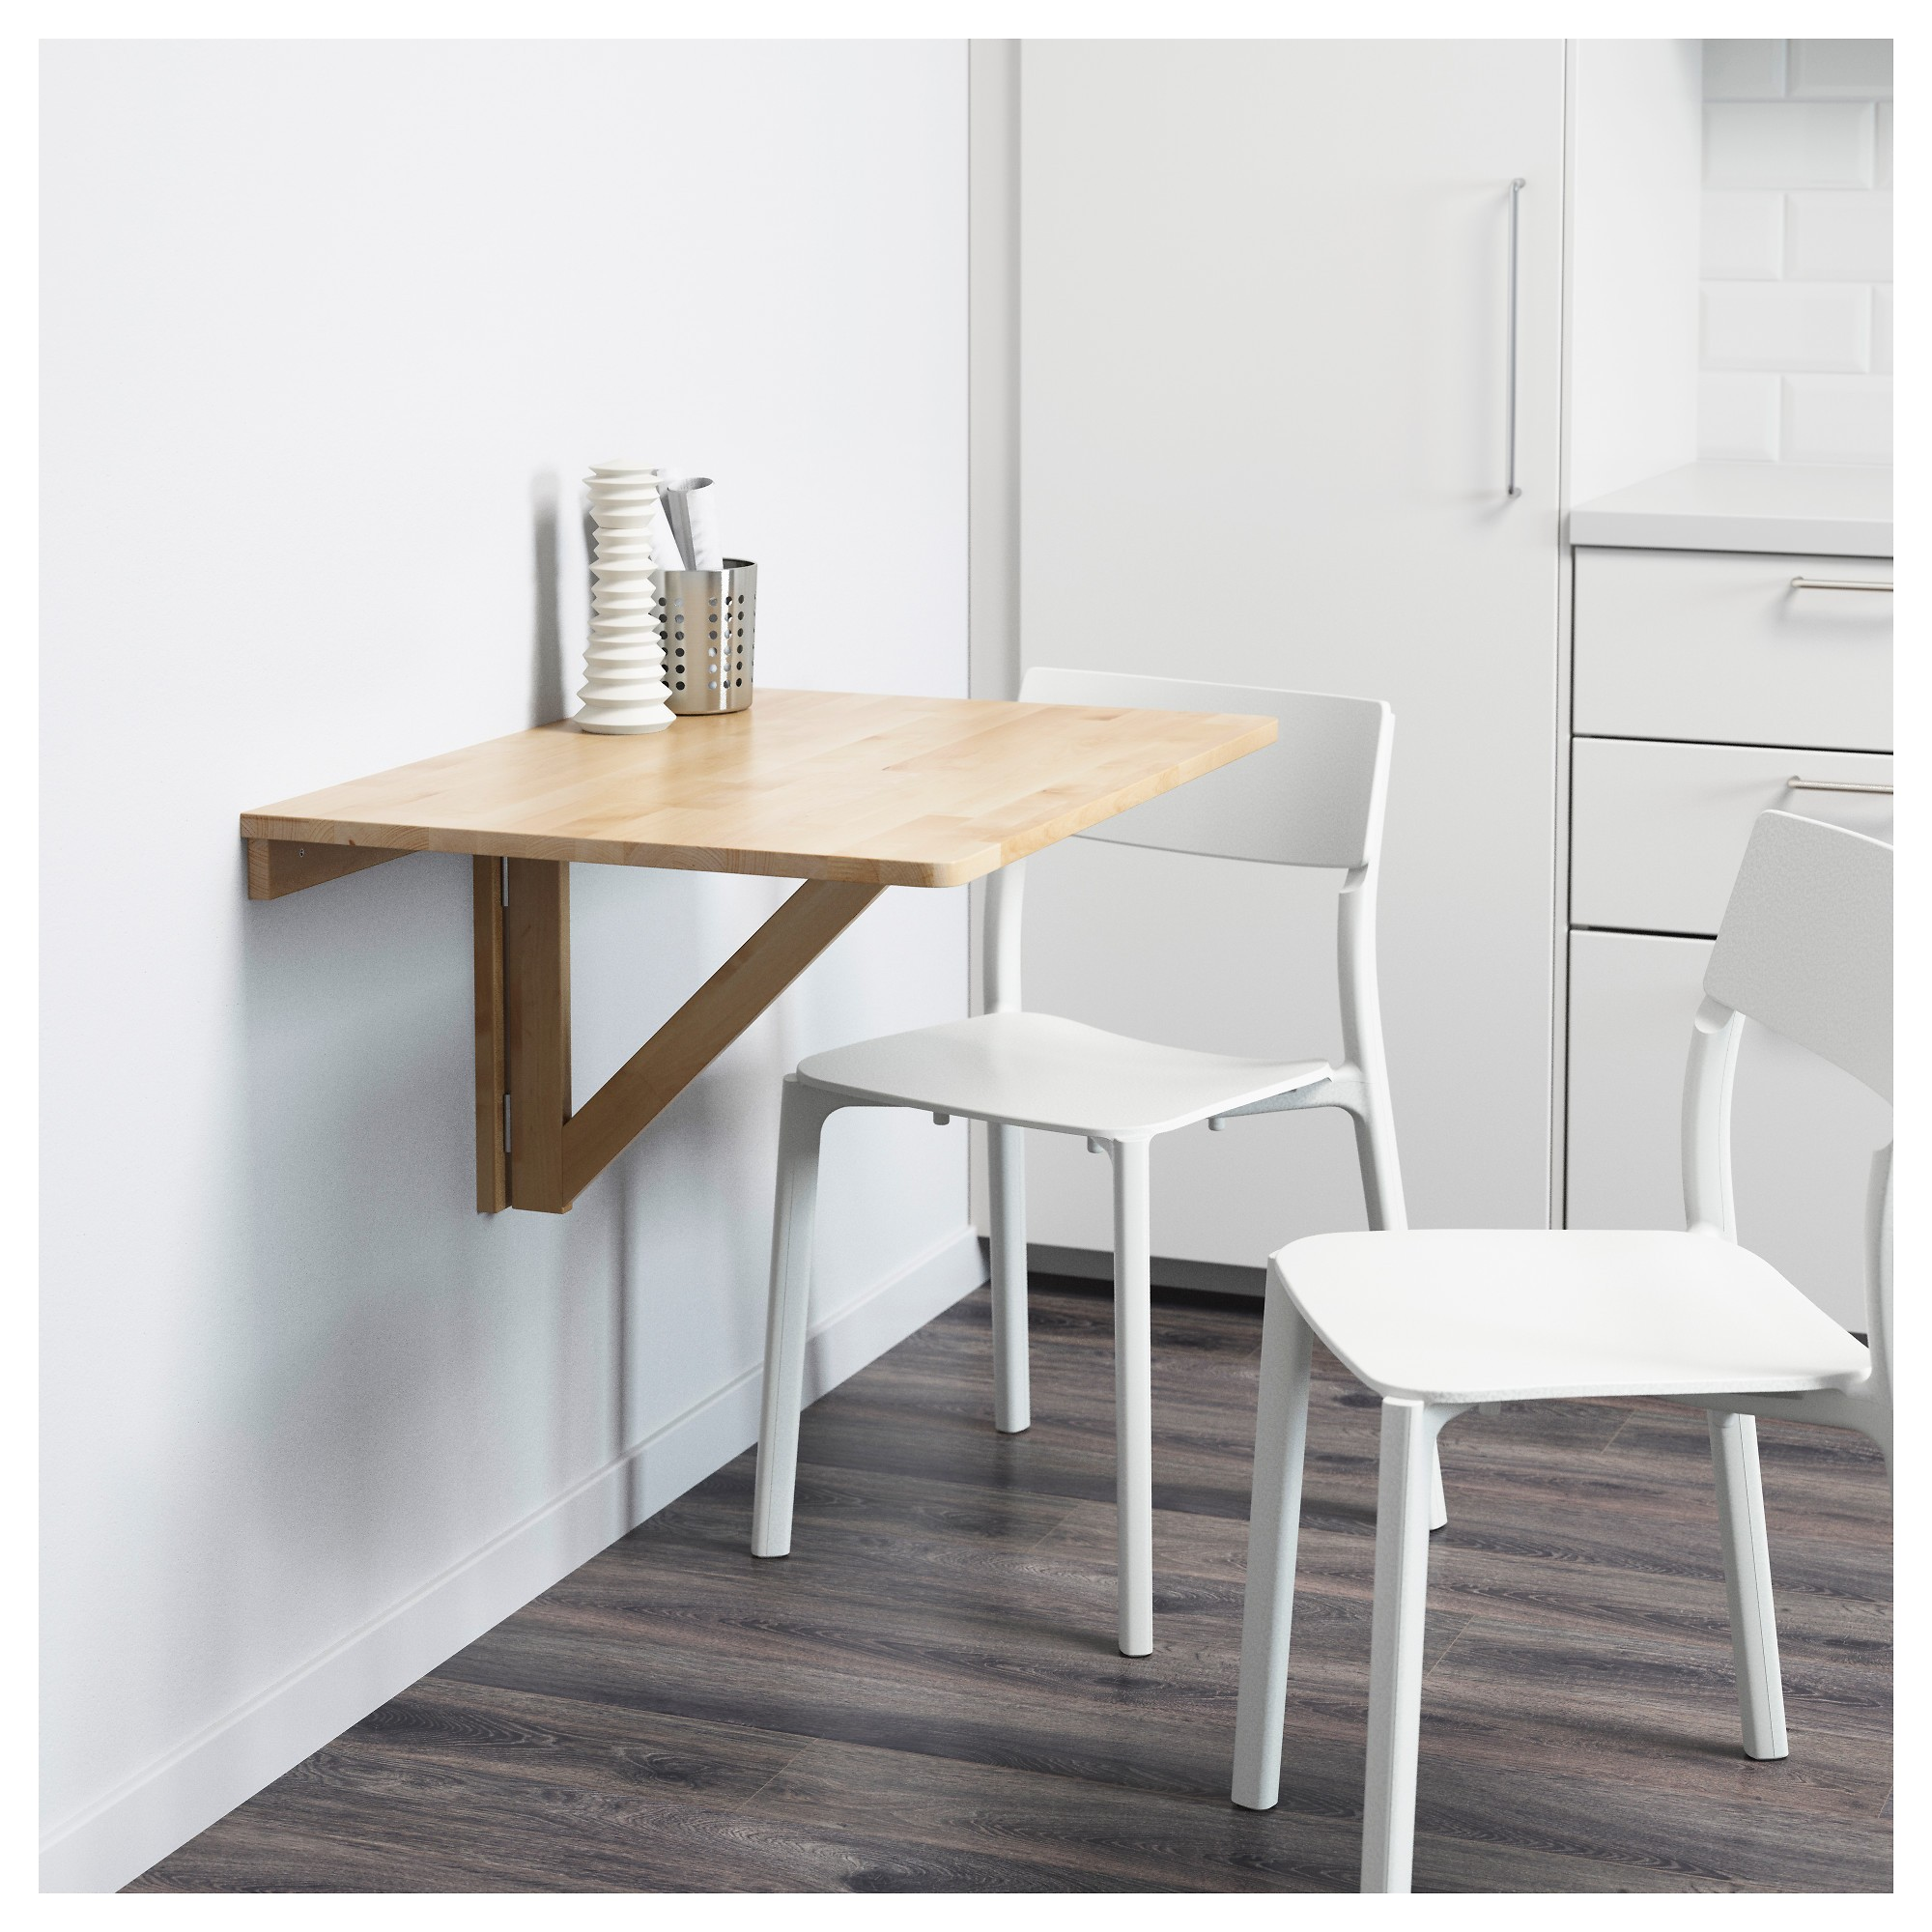 Table cuisine pliante murale ikea cuisine id es de for Table pliante murale